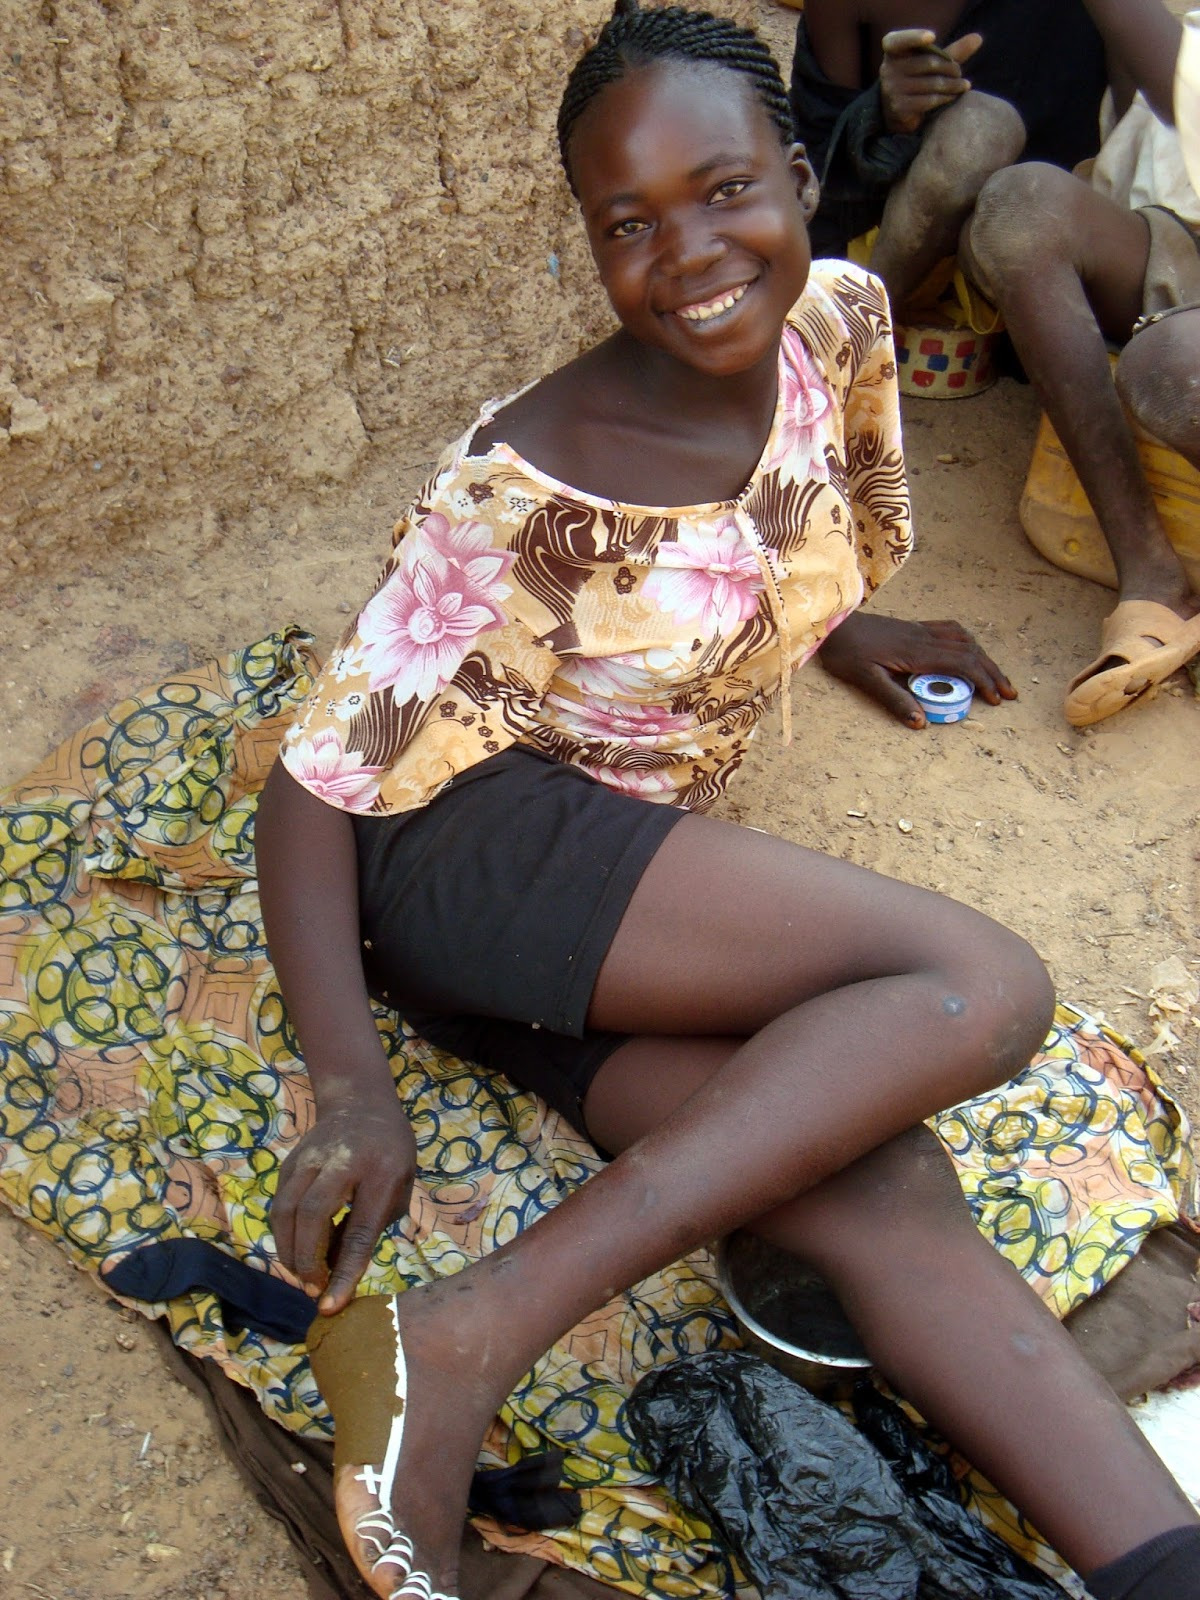 African girls leaked photos